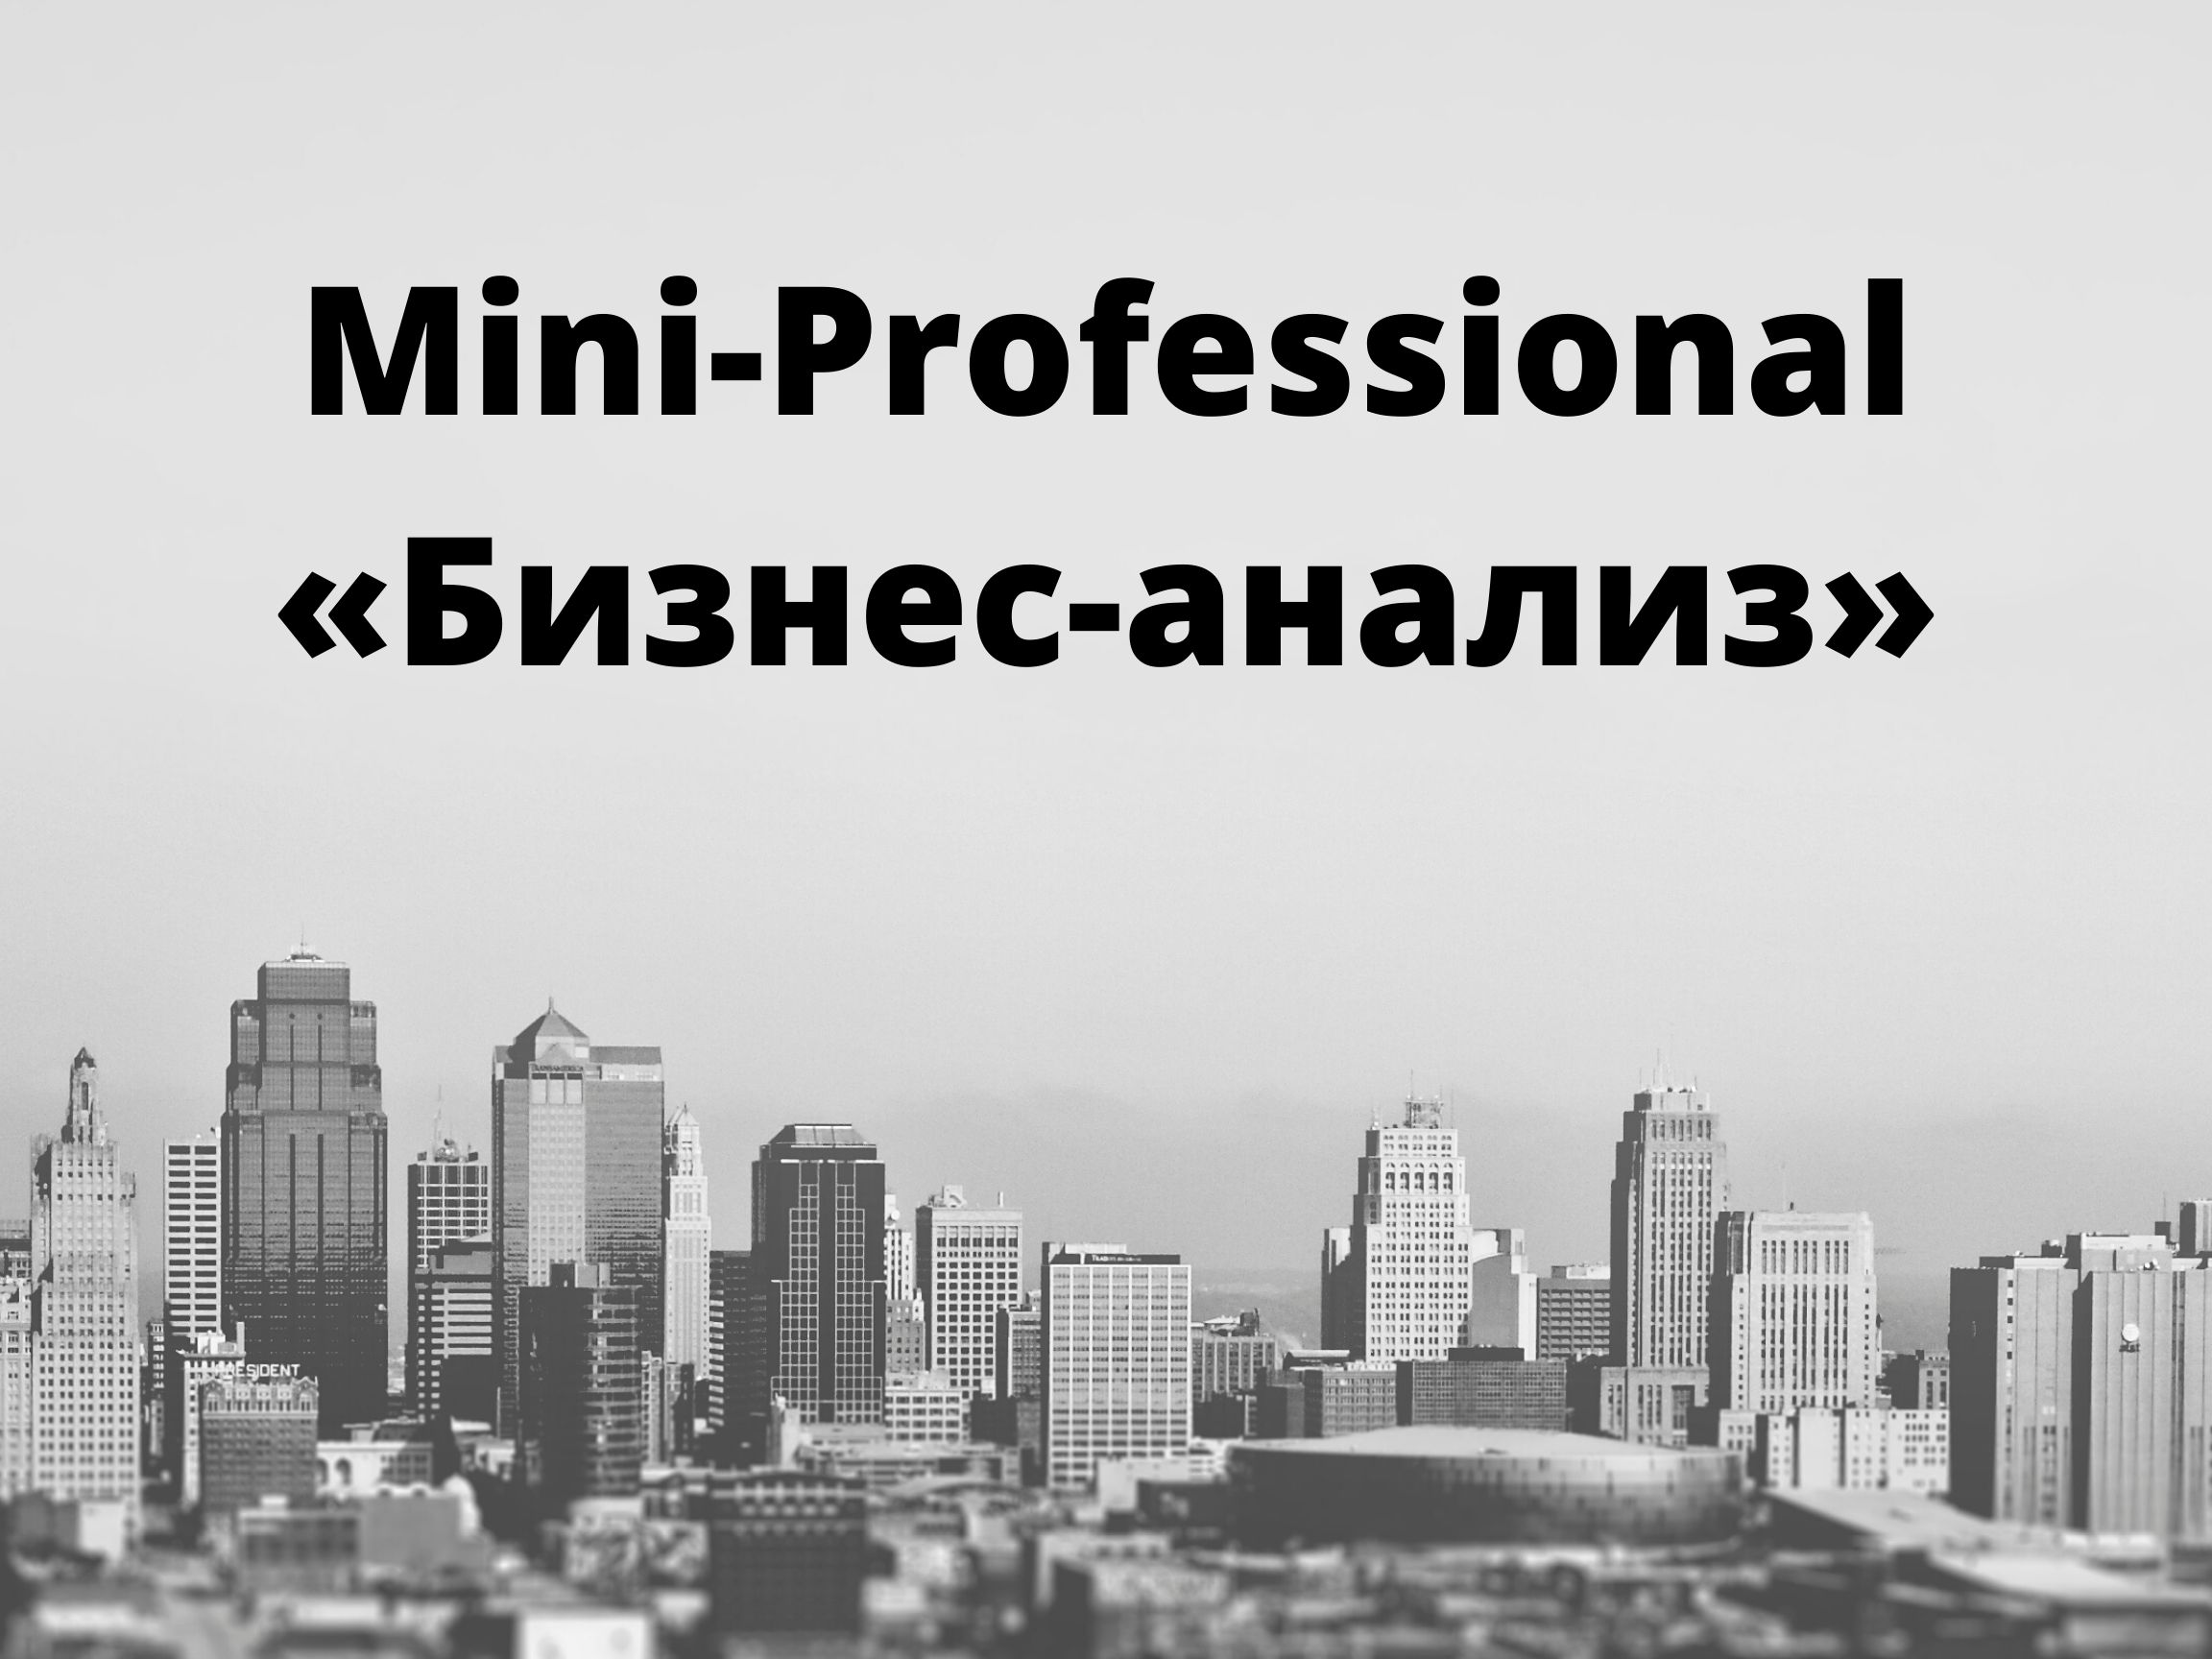 Mini-Professional «Бизнес-анализ»